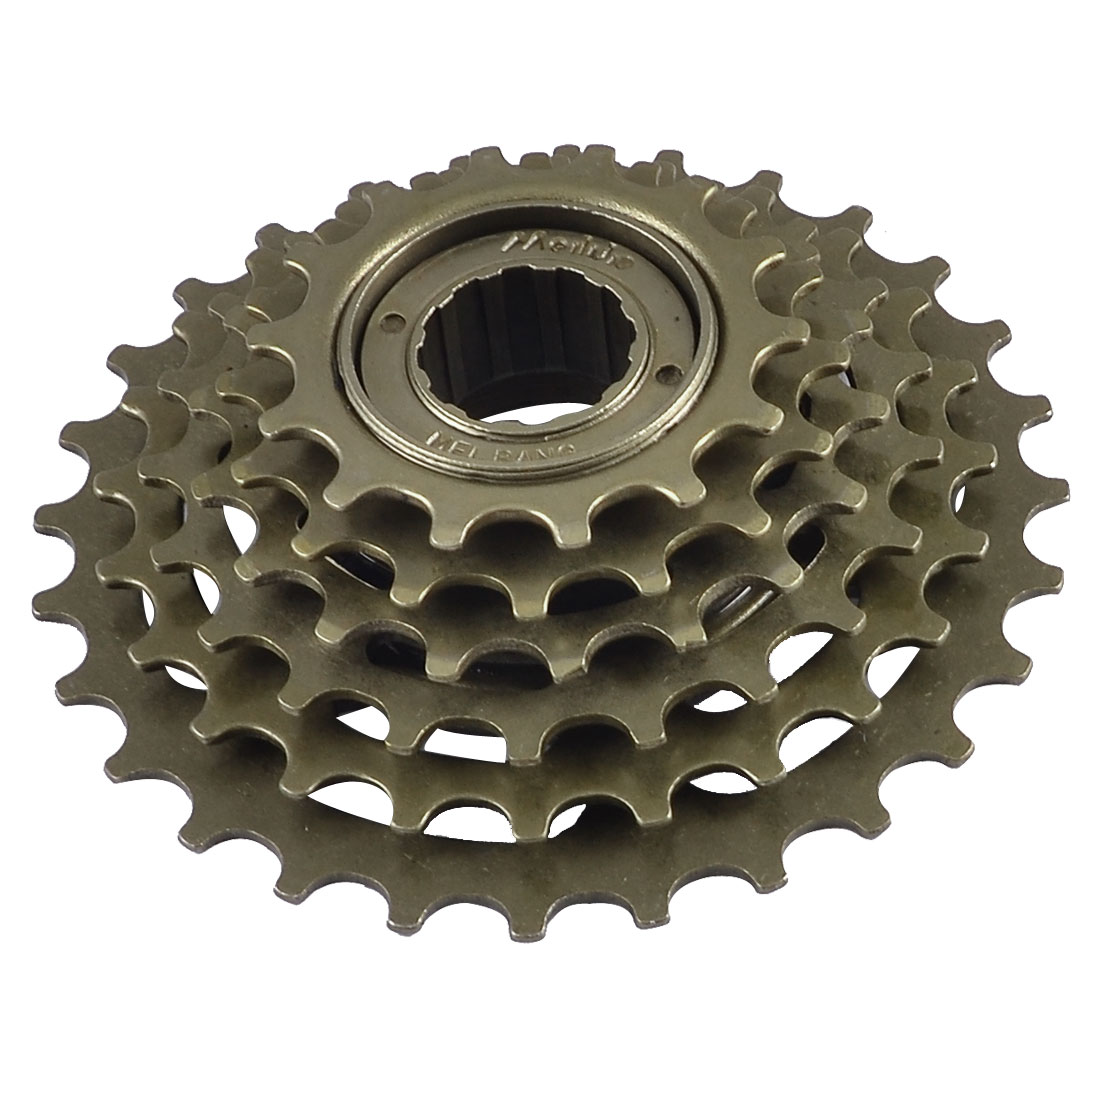 Bike Metal Scooter Sprocket Wheel 6 Speed Freewheel Repair Part